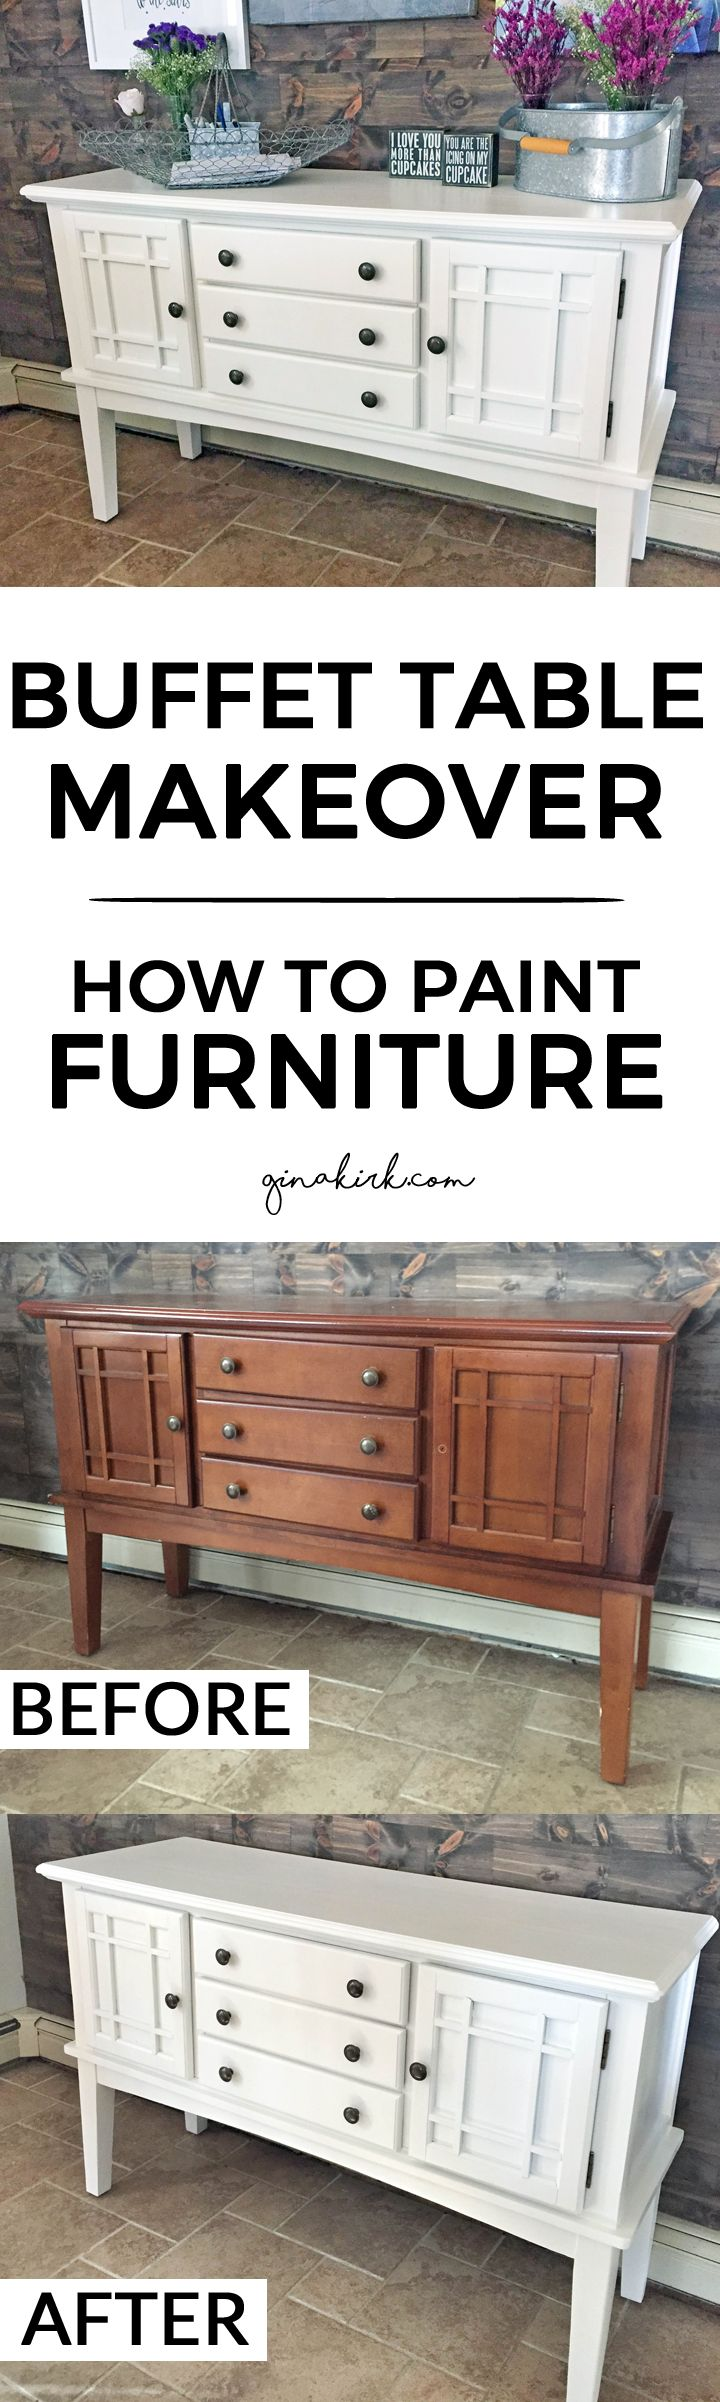 Painted buffet table furniture - Buffet Table Makeover How To Diy Furniture Refinishingrefinished Furnitureupcycled Furniturepainting